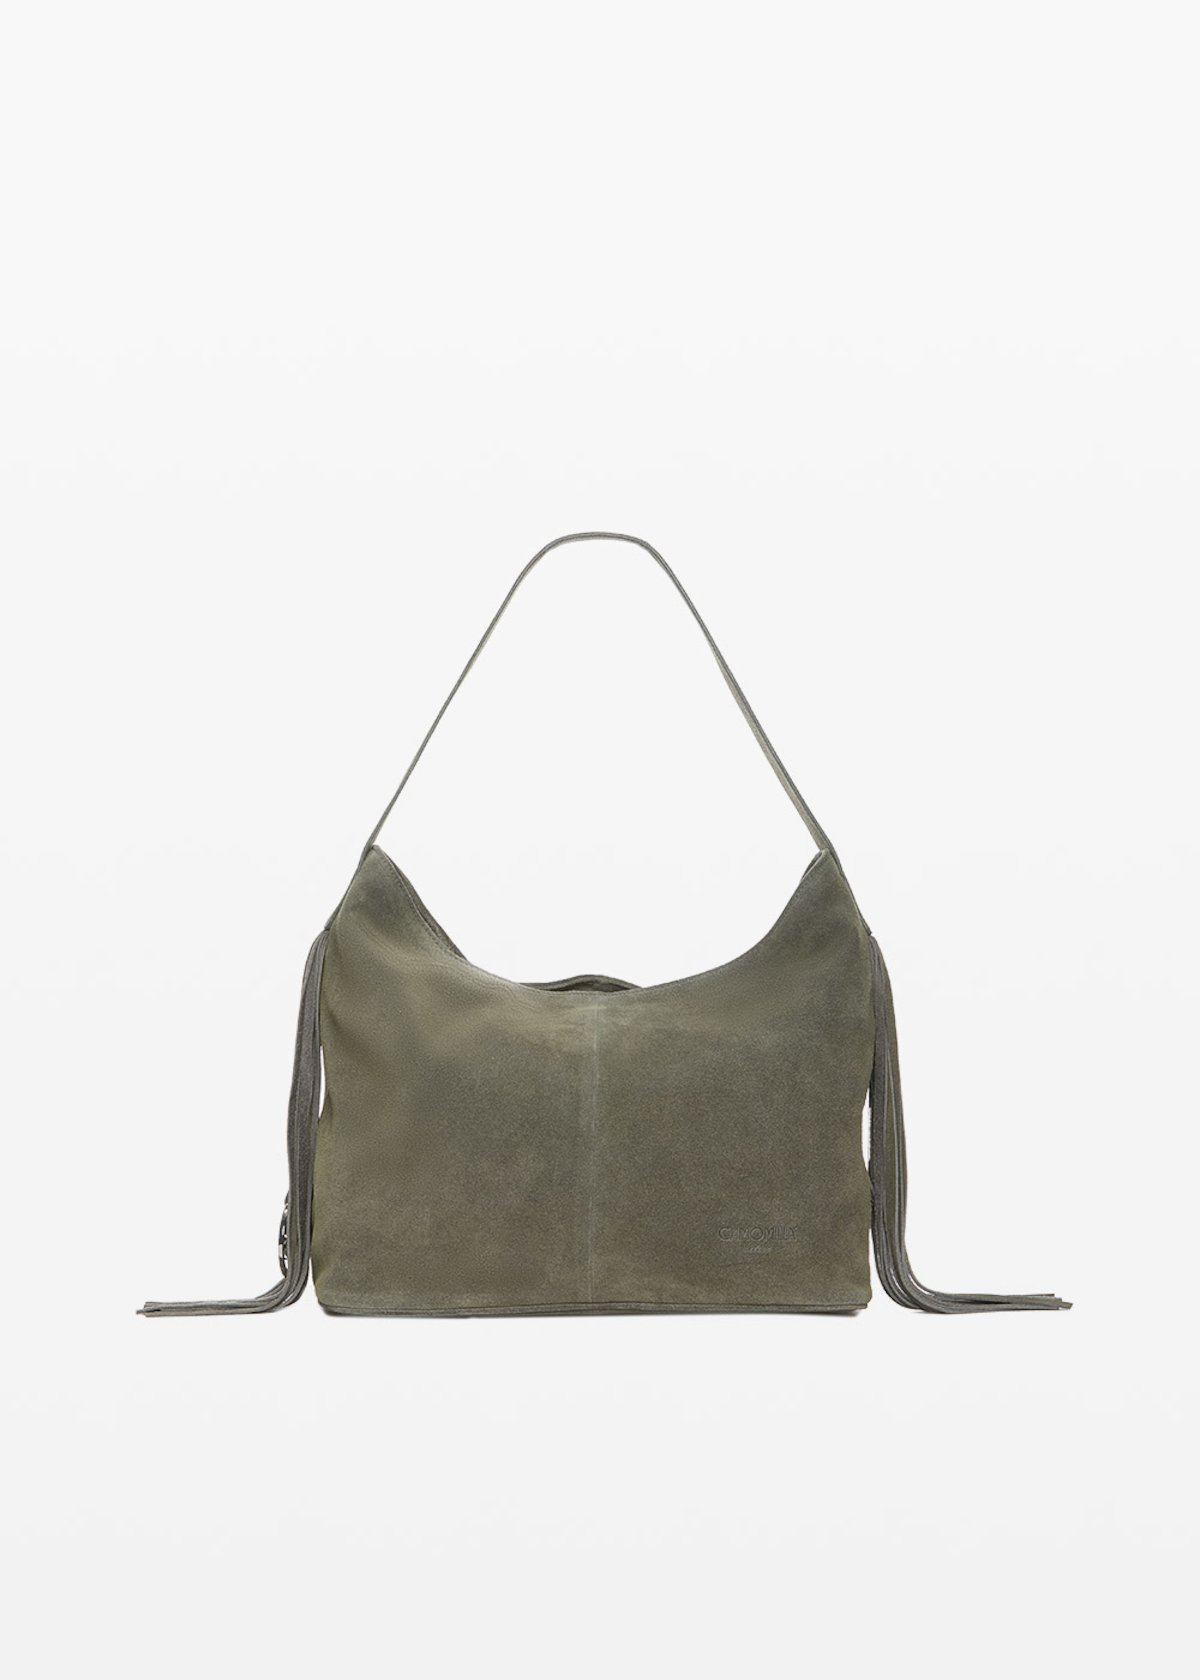 Bryana bag with fringed sides